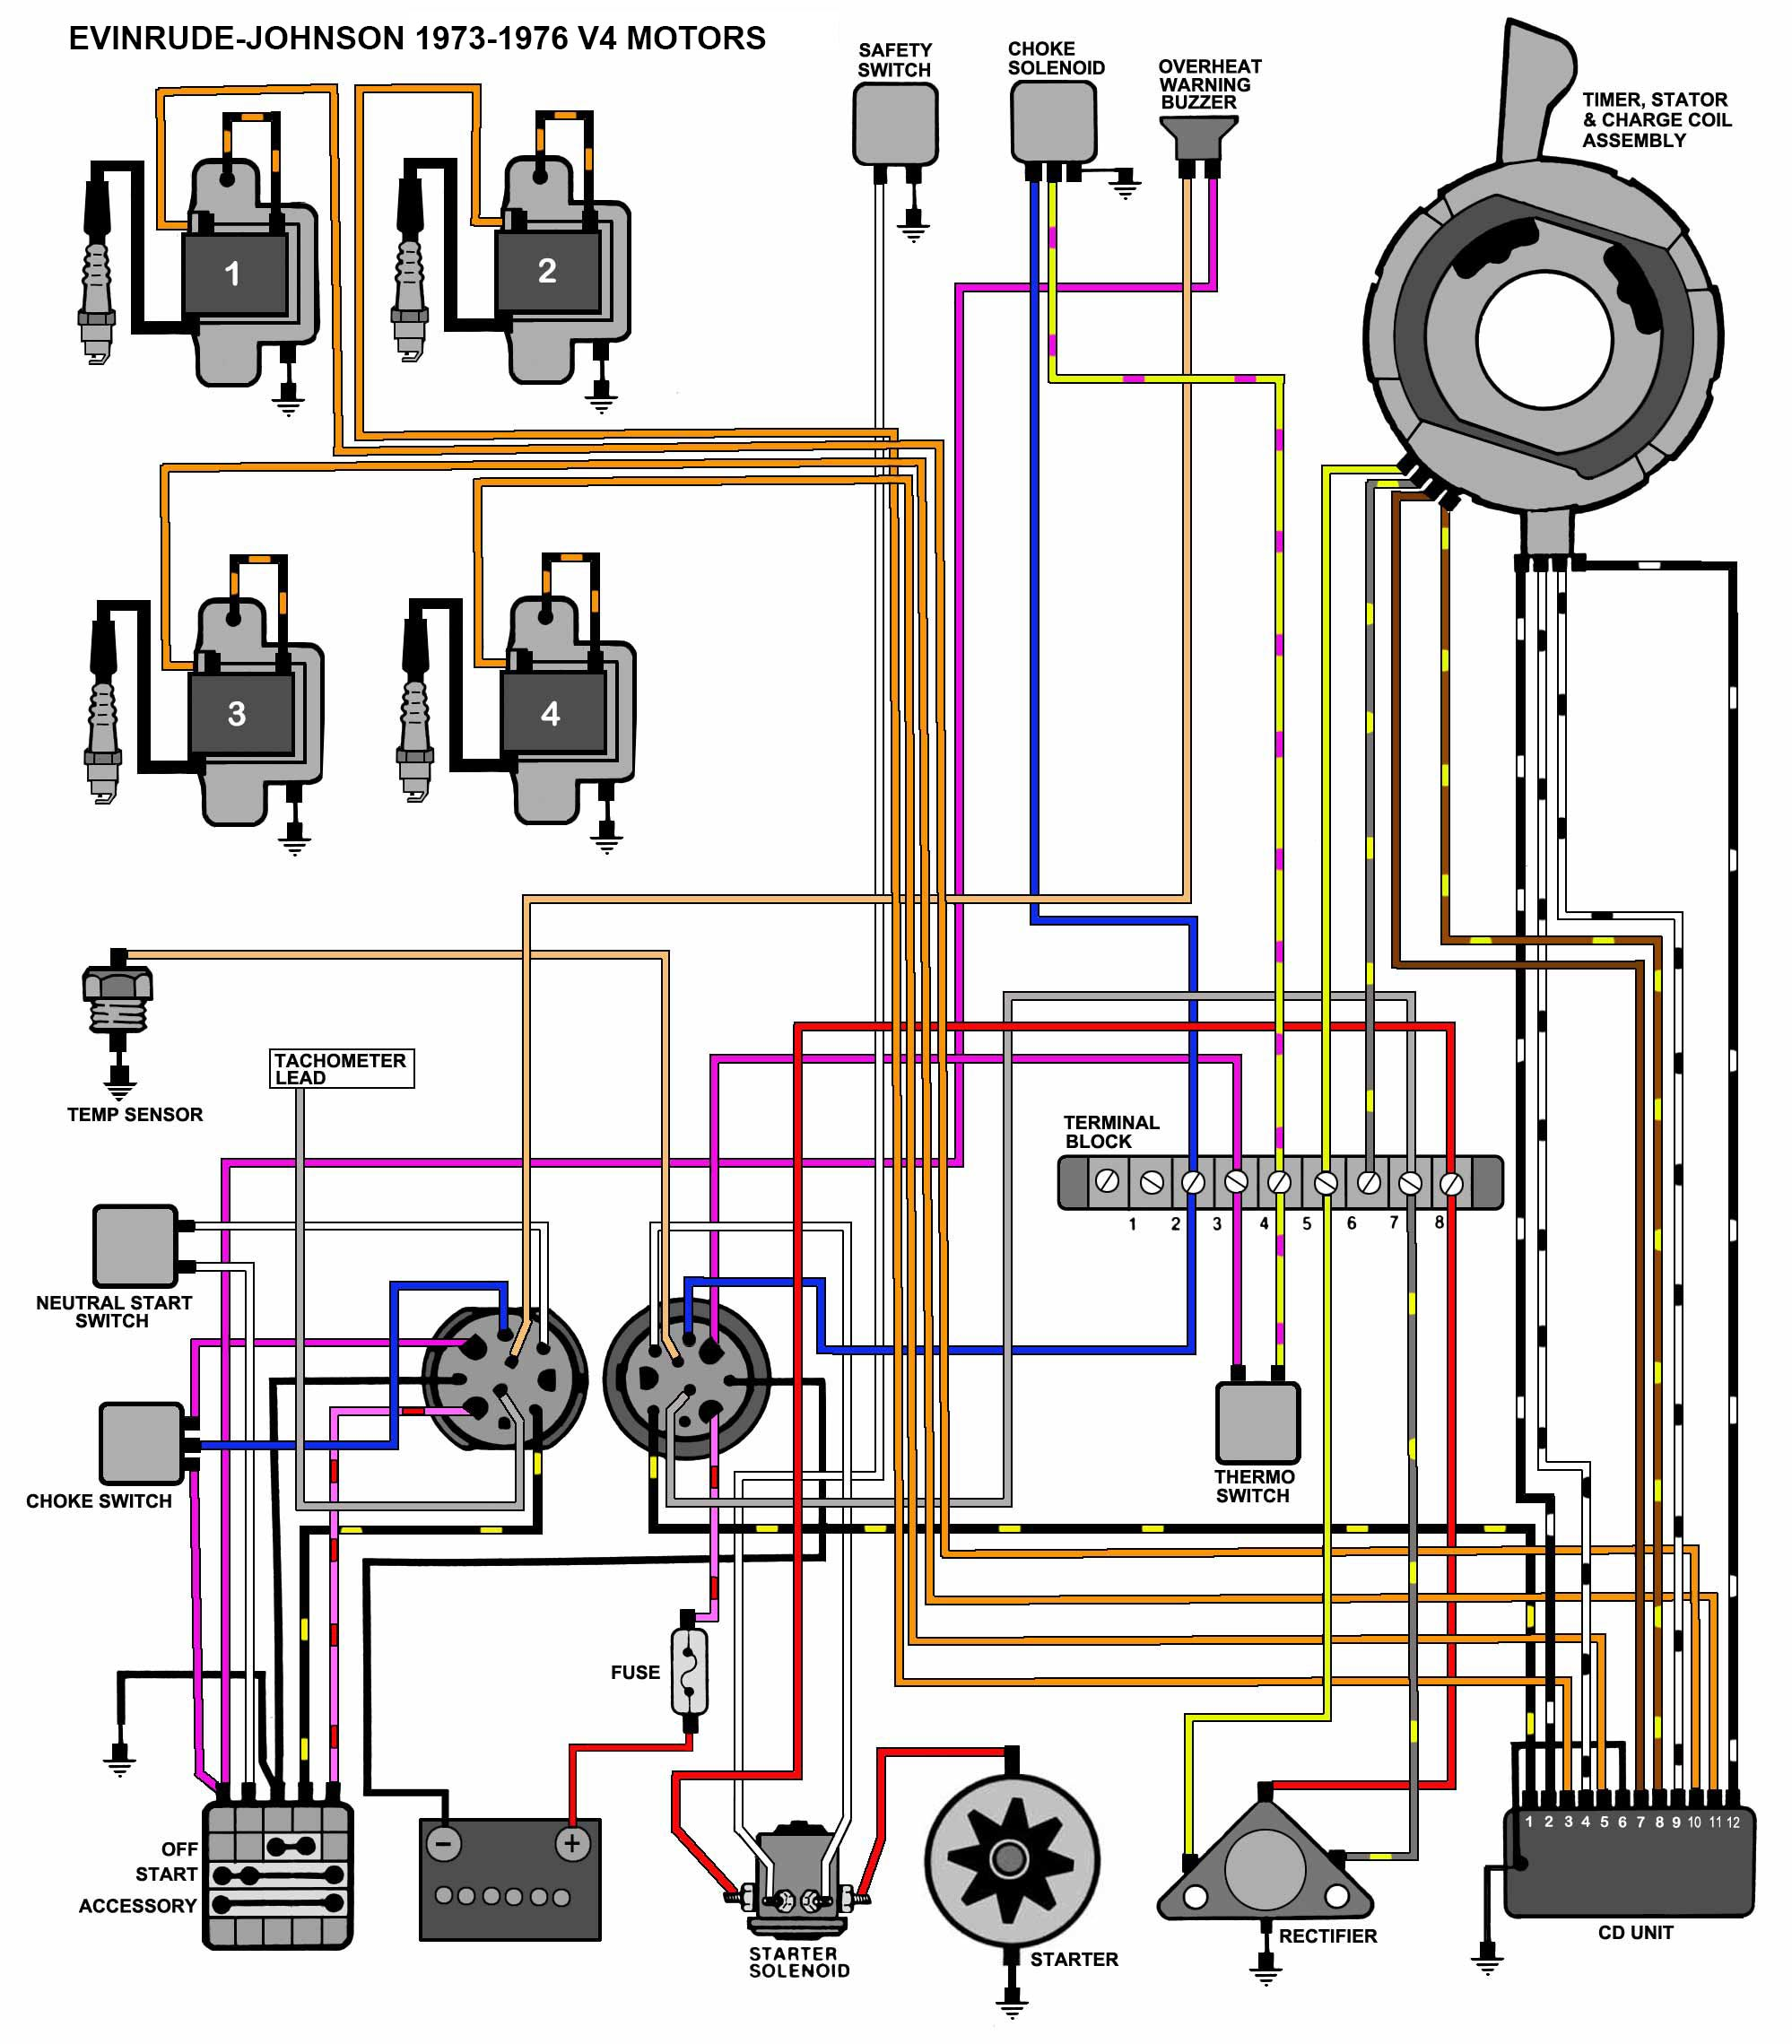 60hp Evinrude Ignition Switch Wiring Diagram - Wiring Diagram Networks | 1978 Omc Wiring Diagram |  | Wiring Diagram Networks - blogger